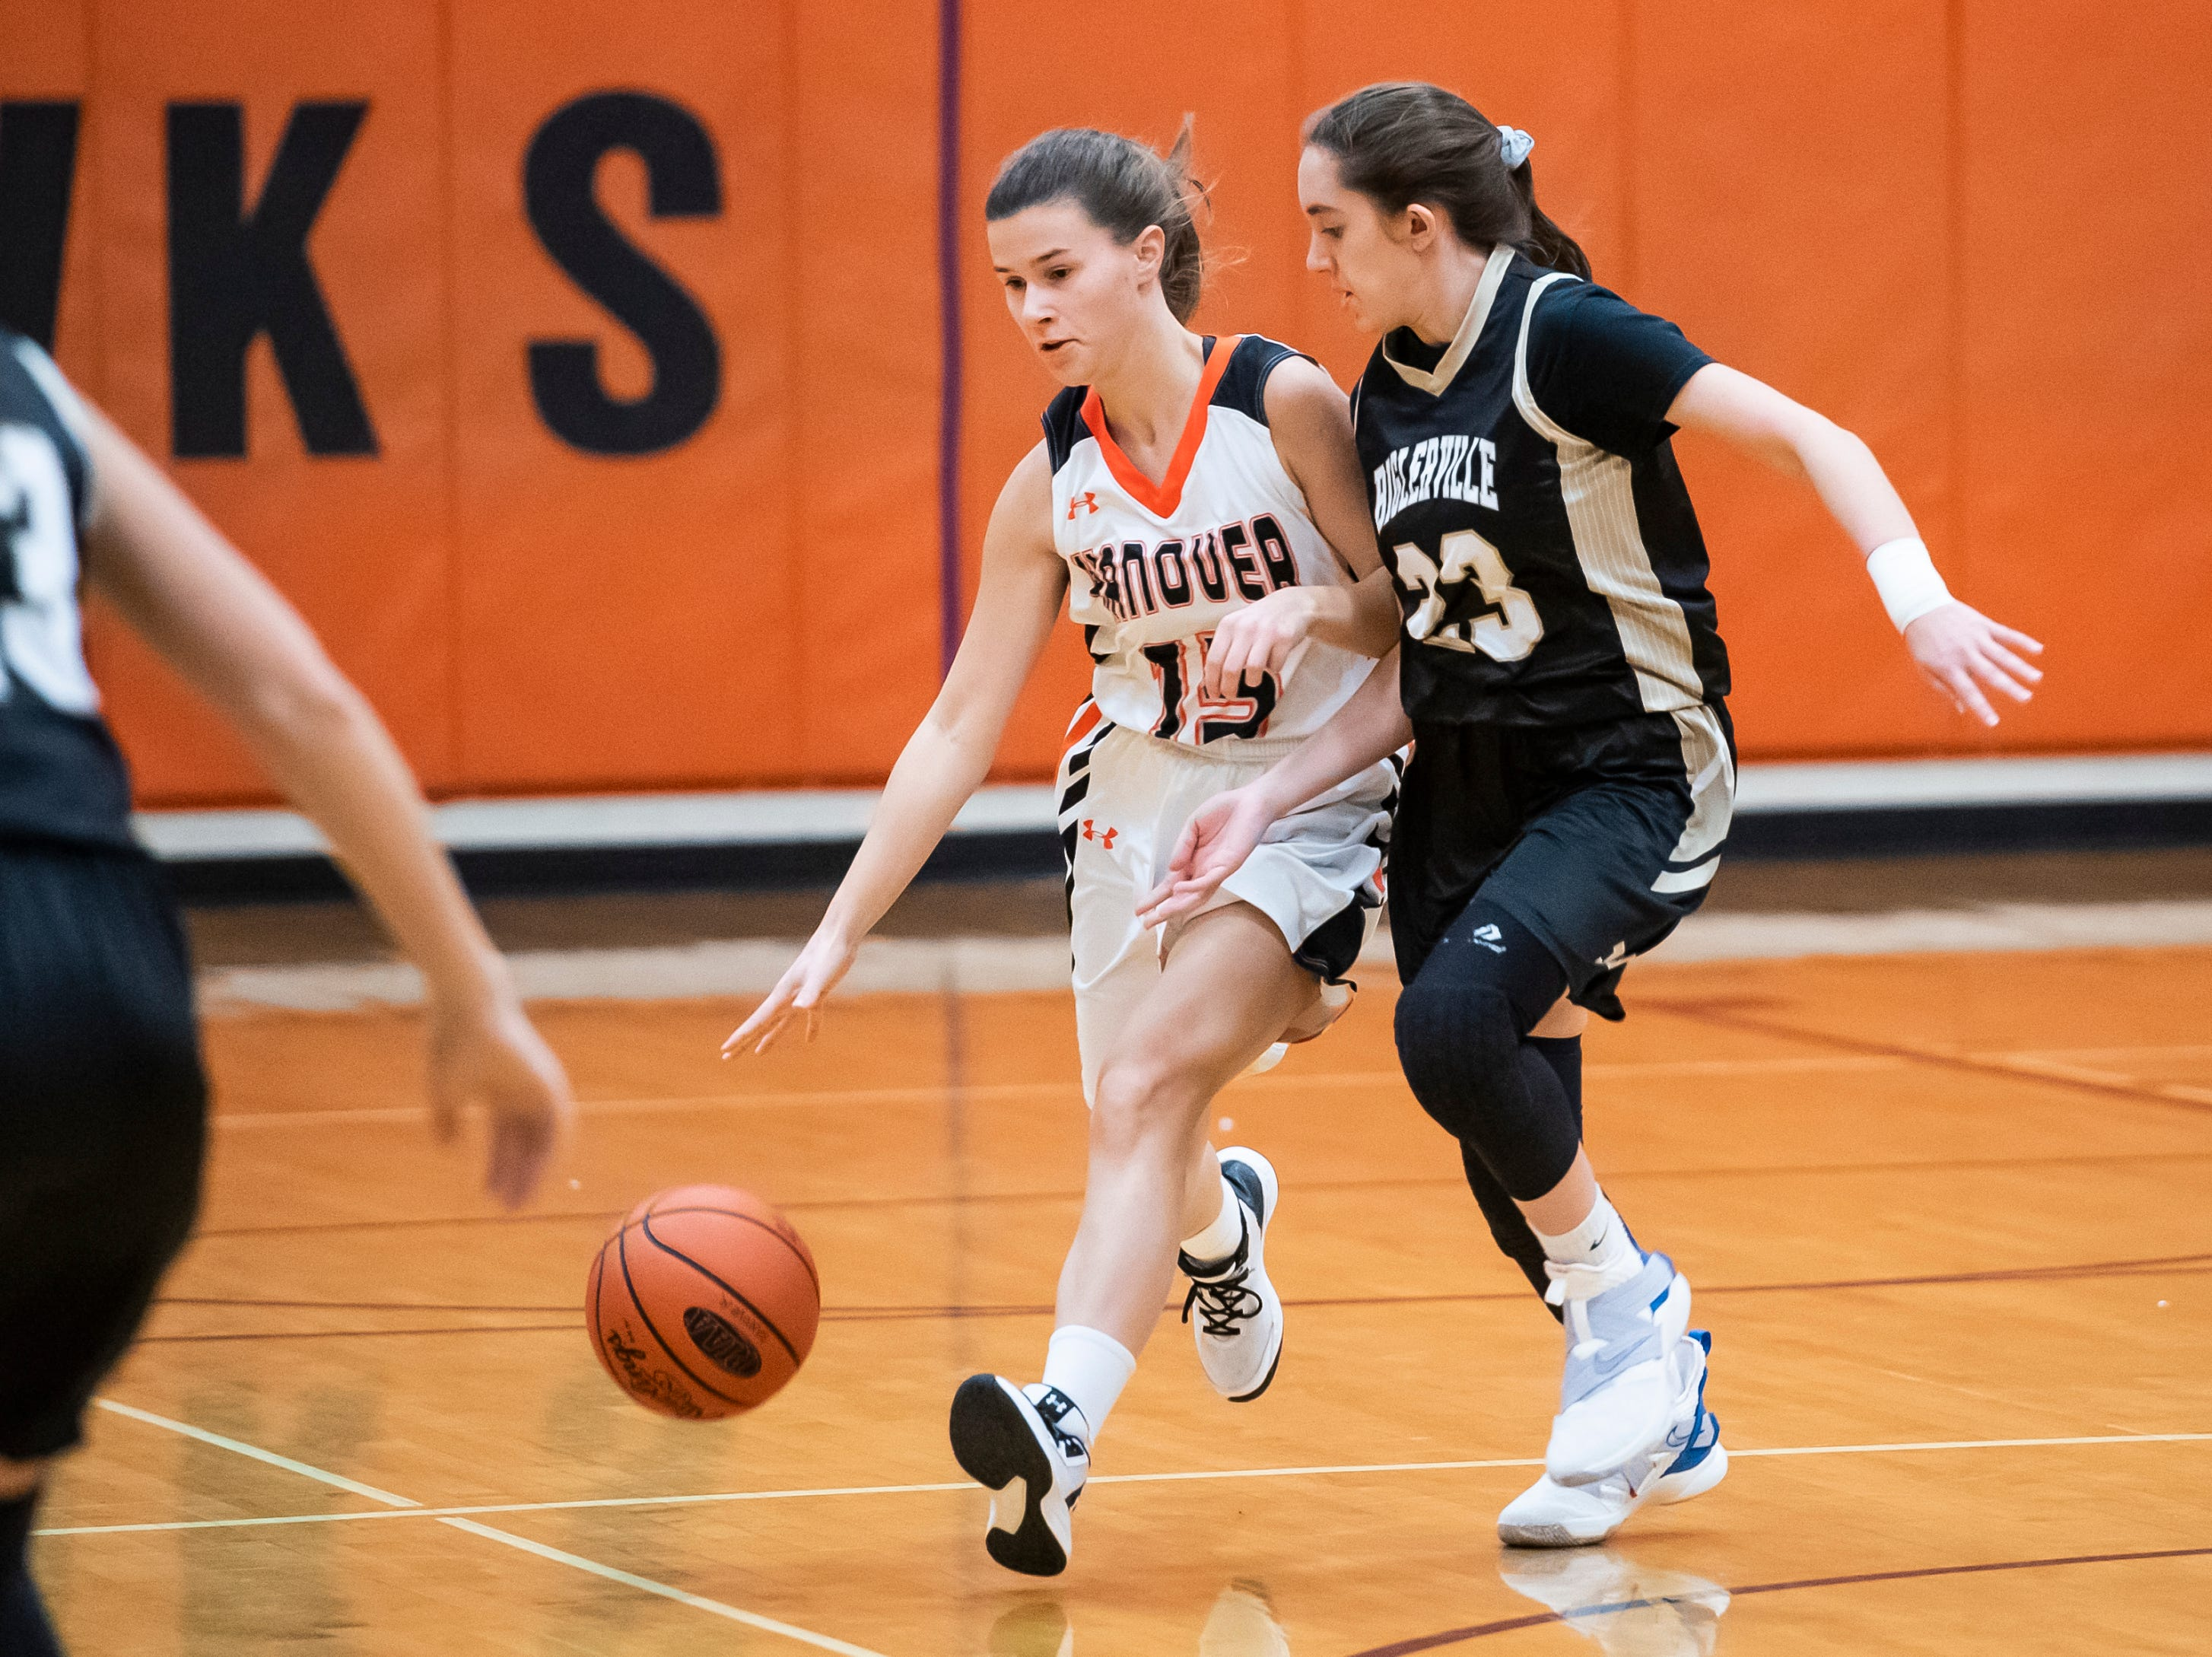 Hanover's Madelyn Hutton dribbles the ball down the court alongside Biglerville's Katie Woolson in the championship game of the Hanover Holiday Classic on Friday, December 28, 2018. Hanover won 30-20.